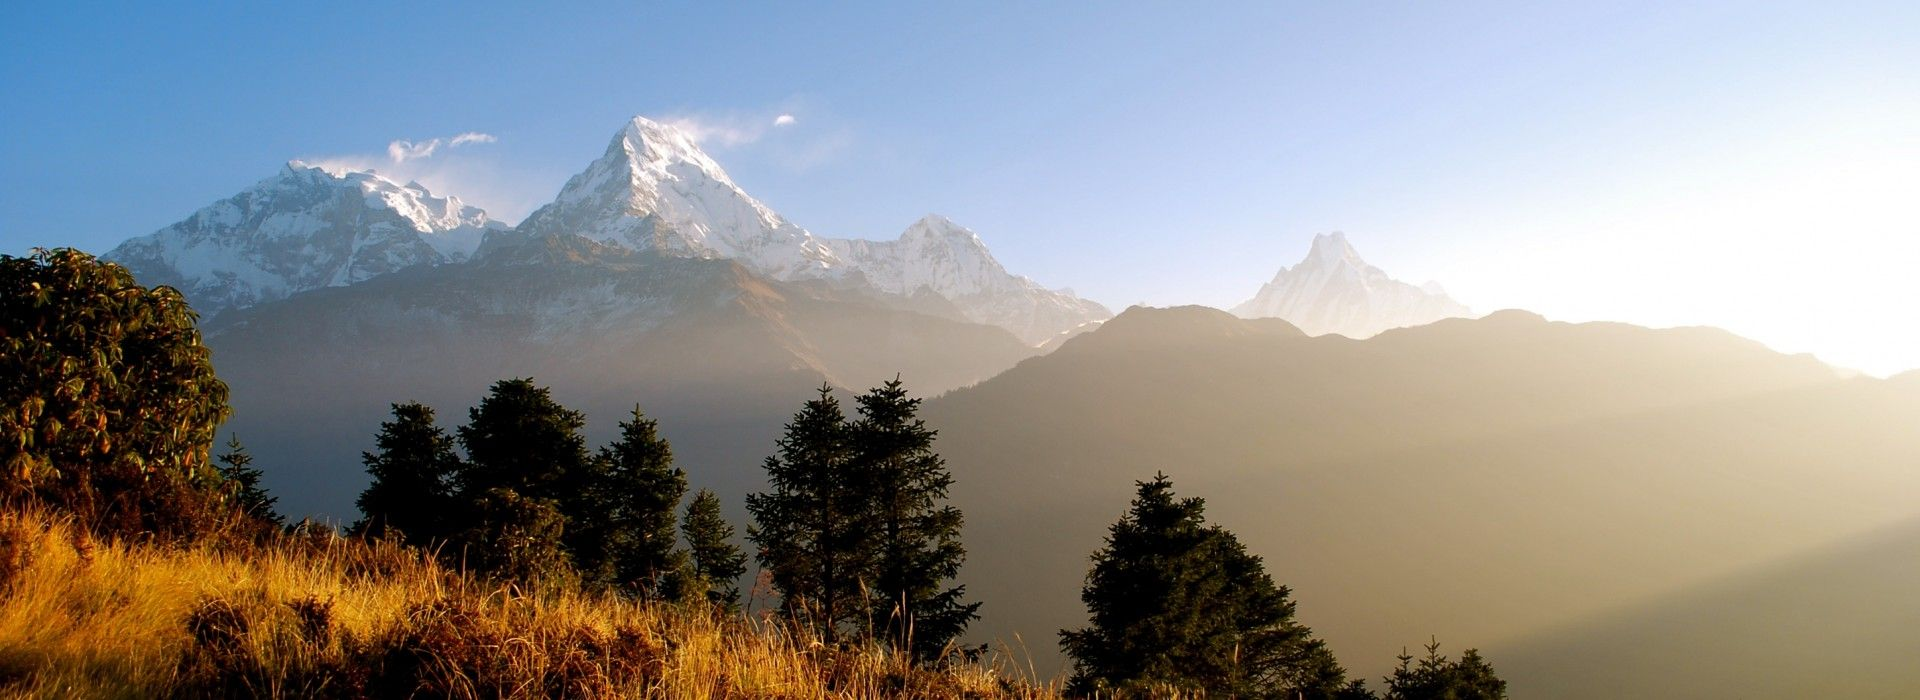 Sightseeing, attractions, culture and history Tours in Nepal